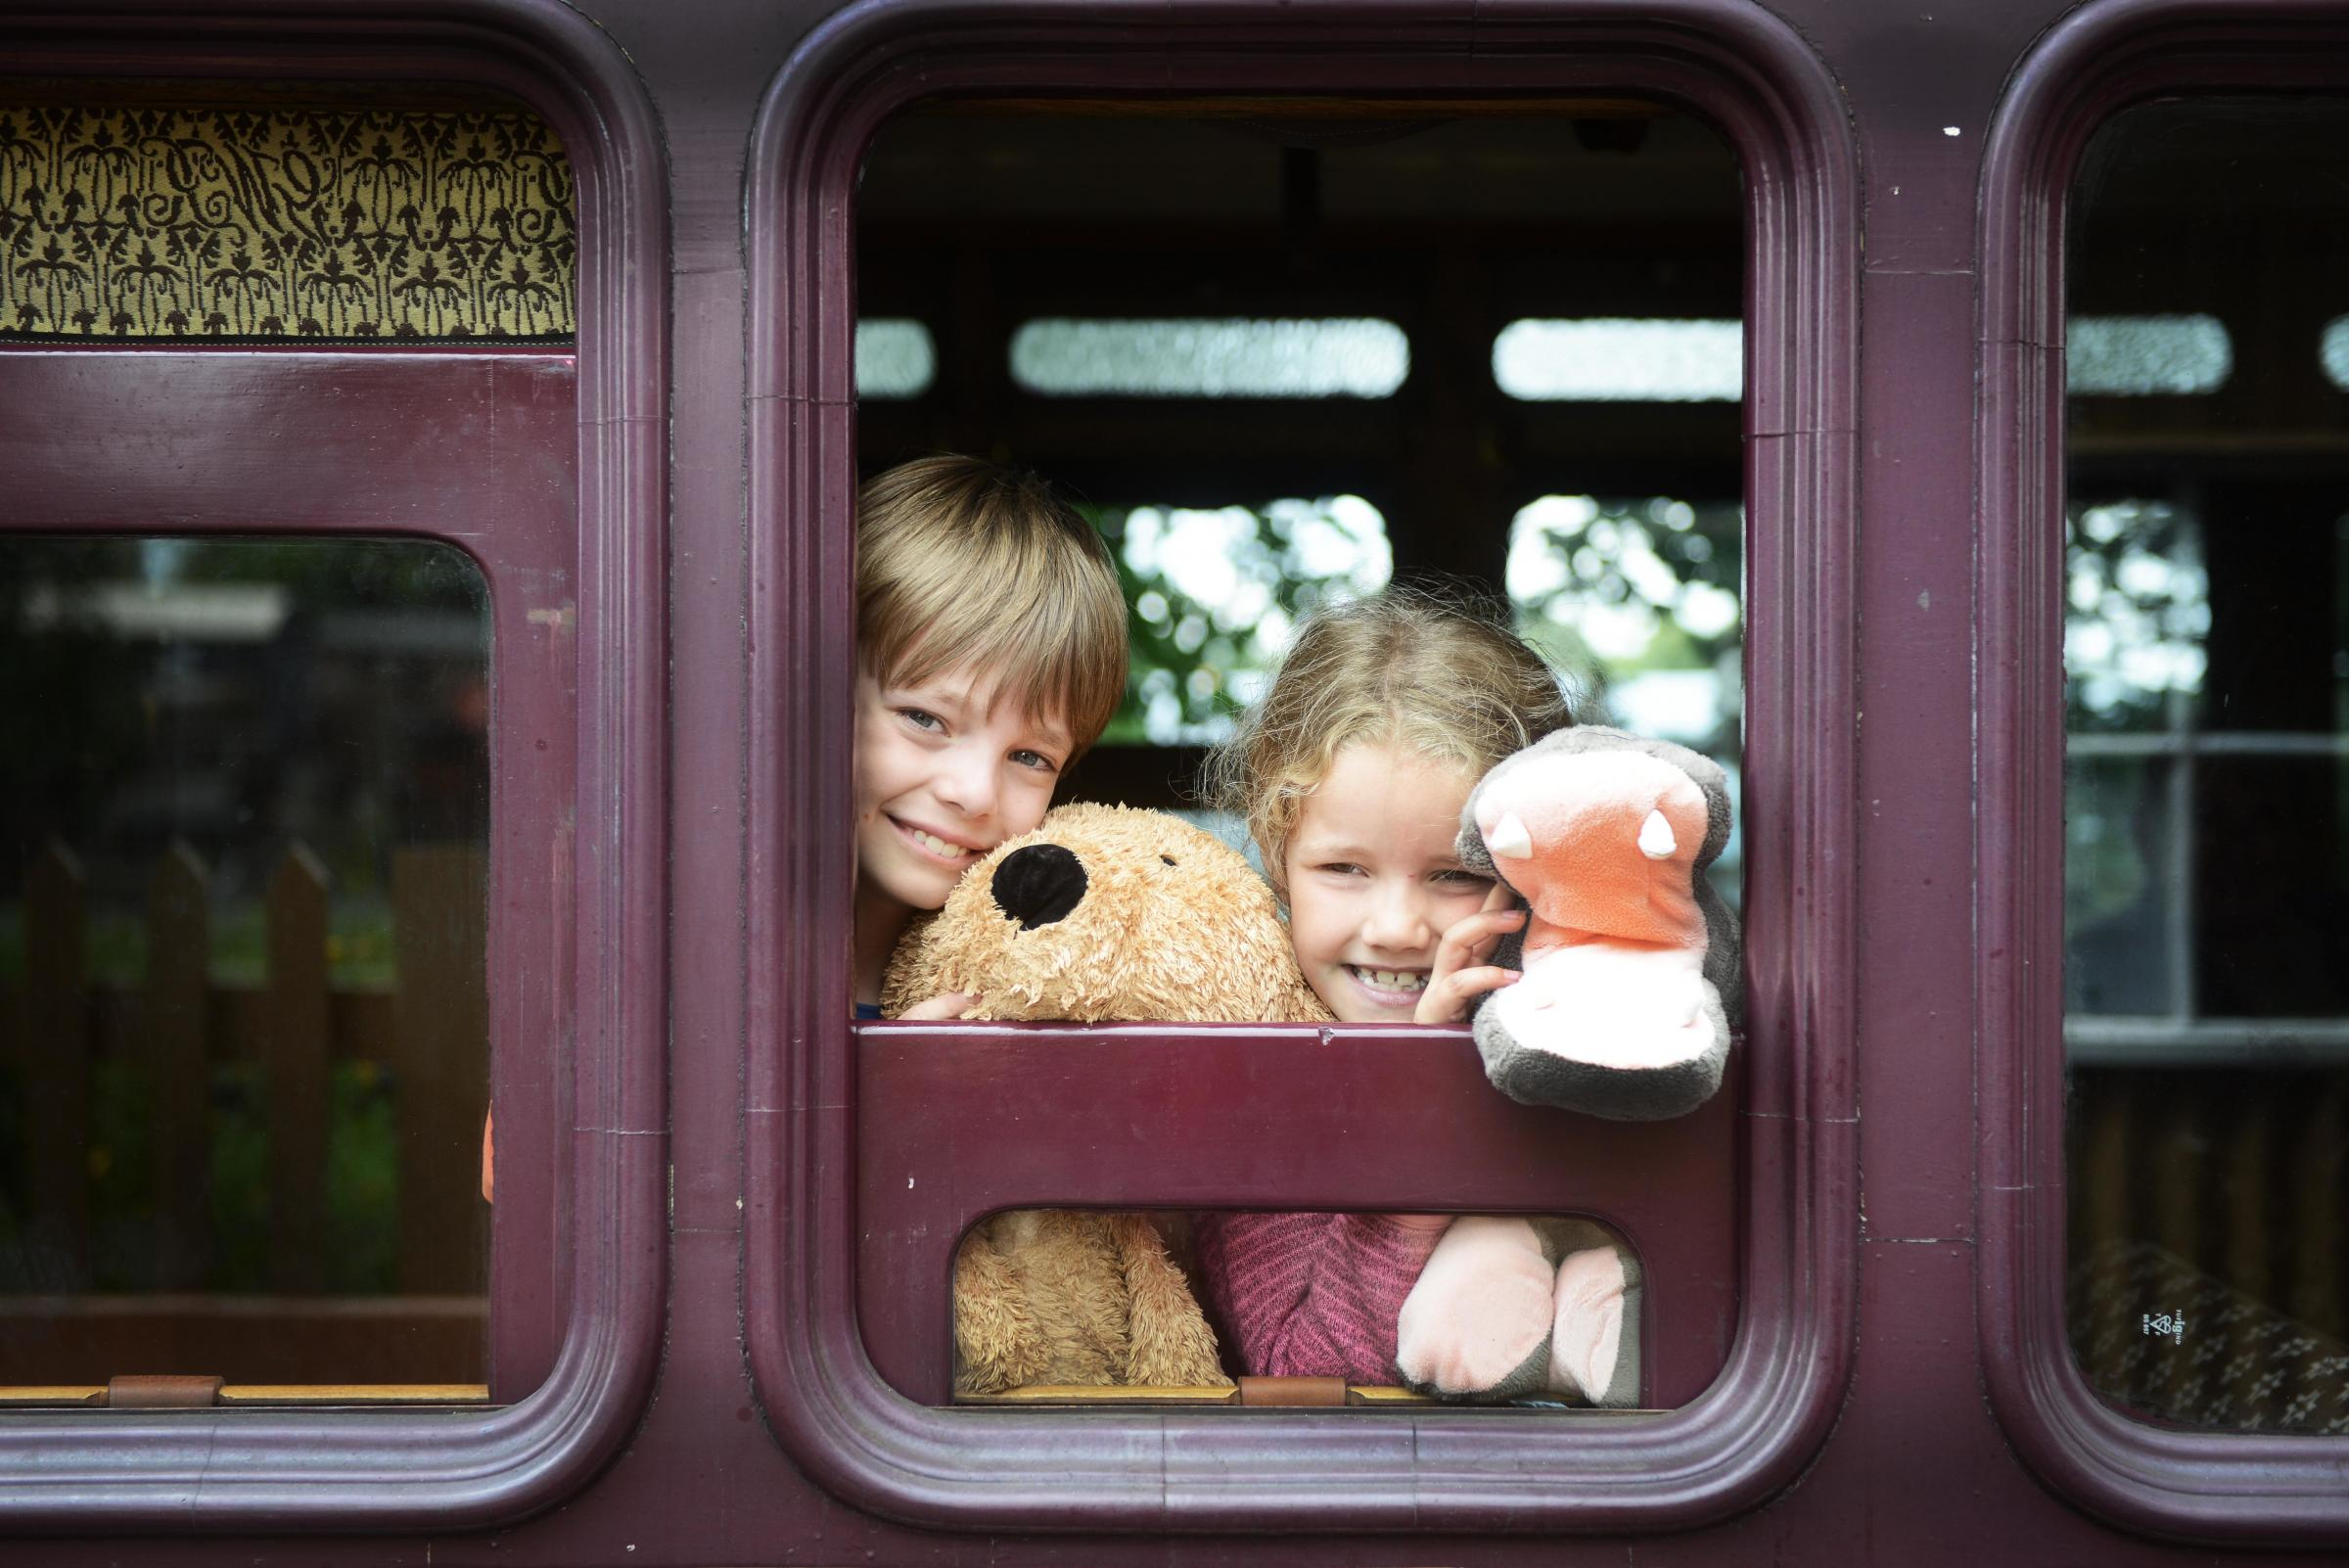 Didcot Railway Centre, en(9) and Elizabeth (7) enjoy a day at the Didcot Railway Centre. Picture by Richard Cave